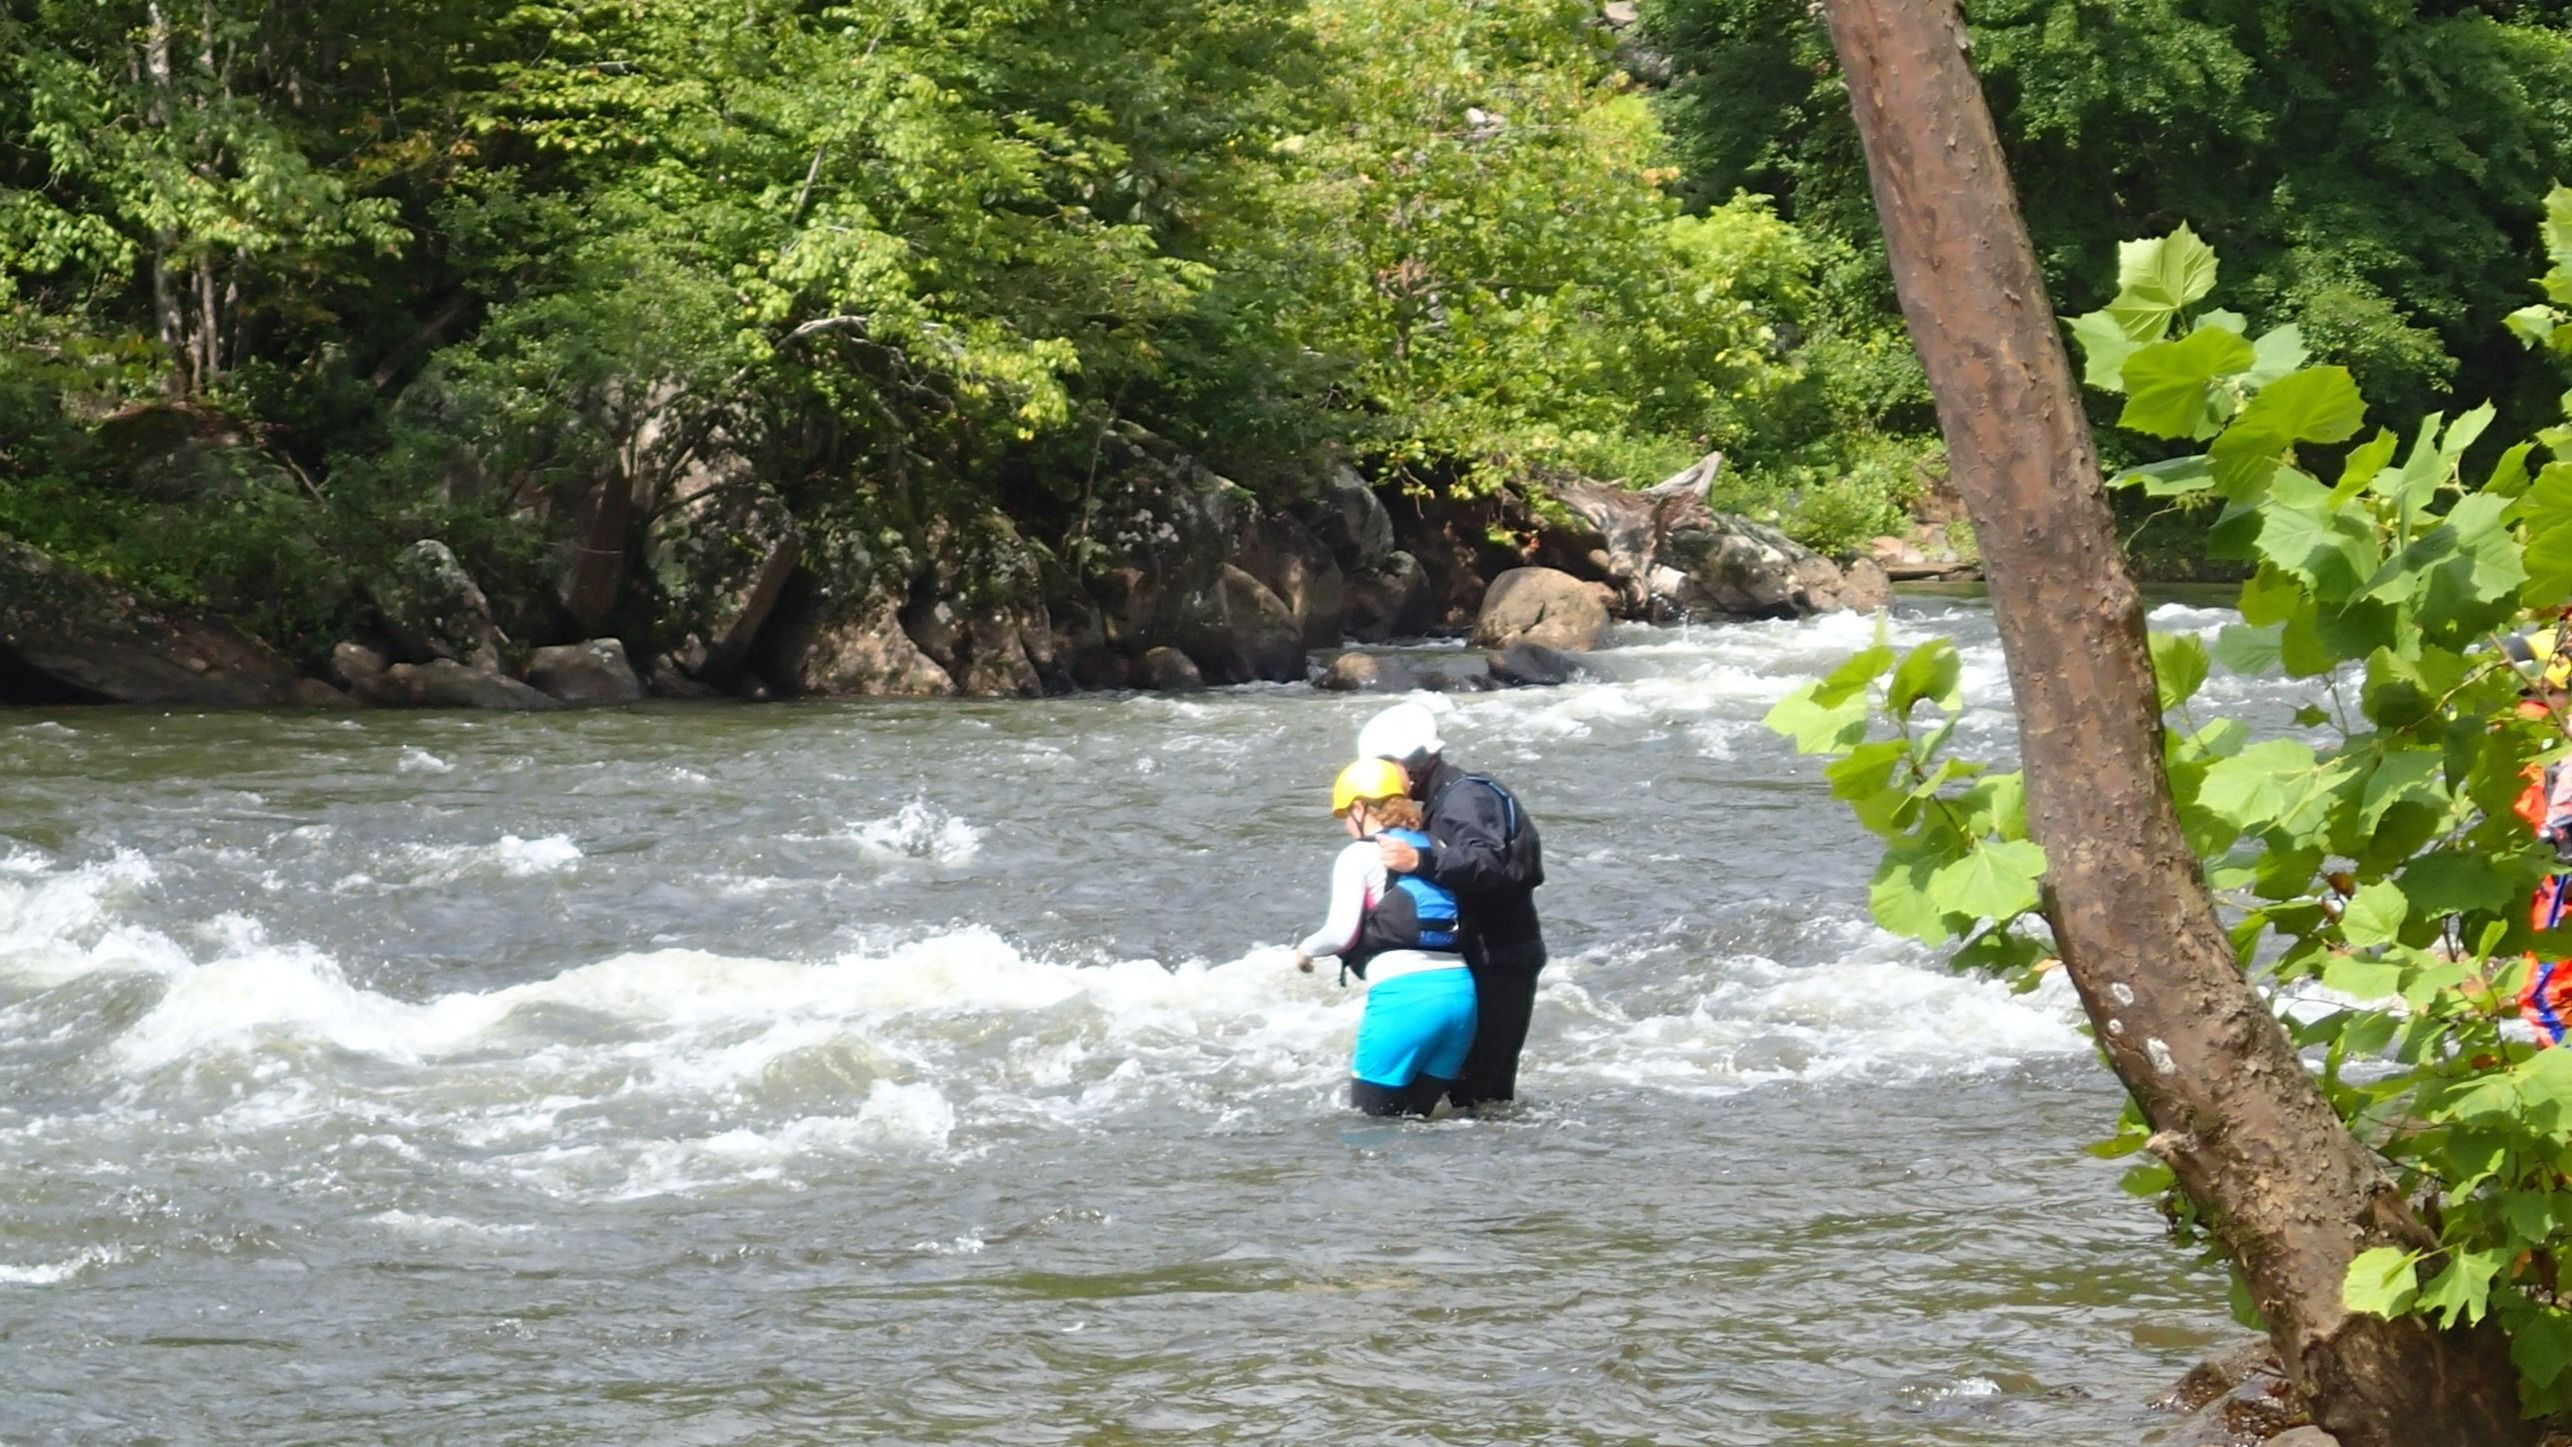 Kayak Classes and Trips for Beginners!